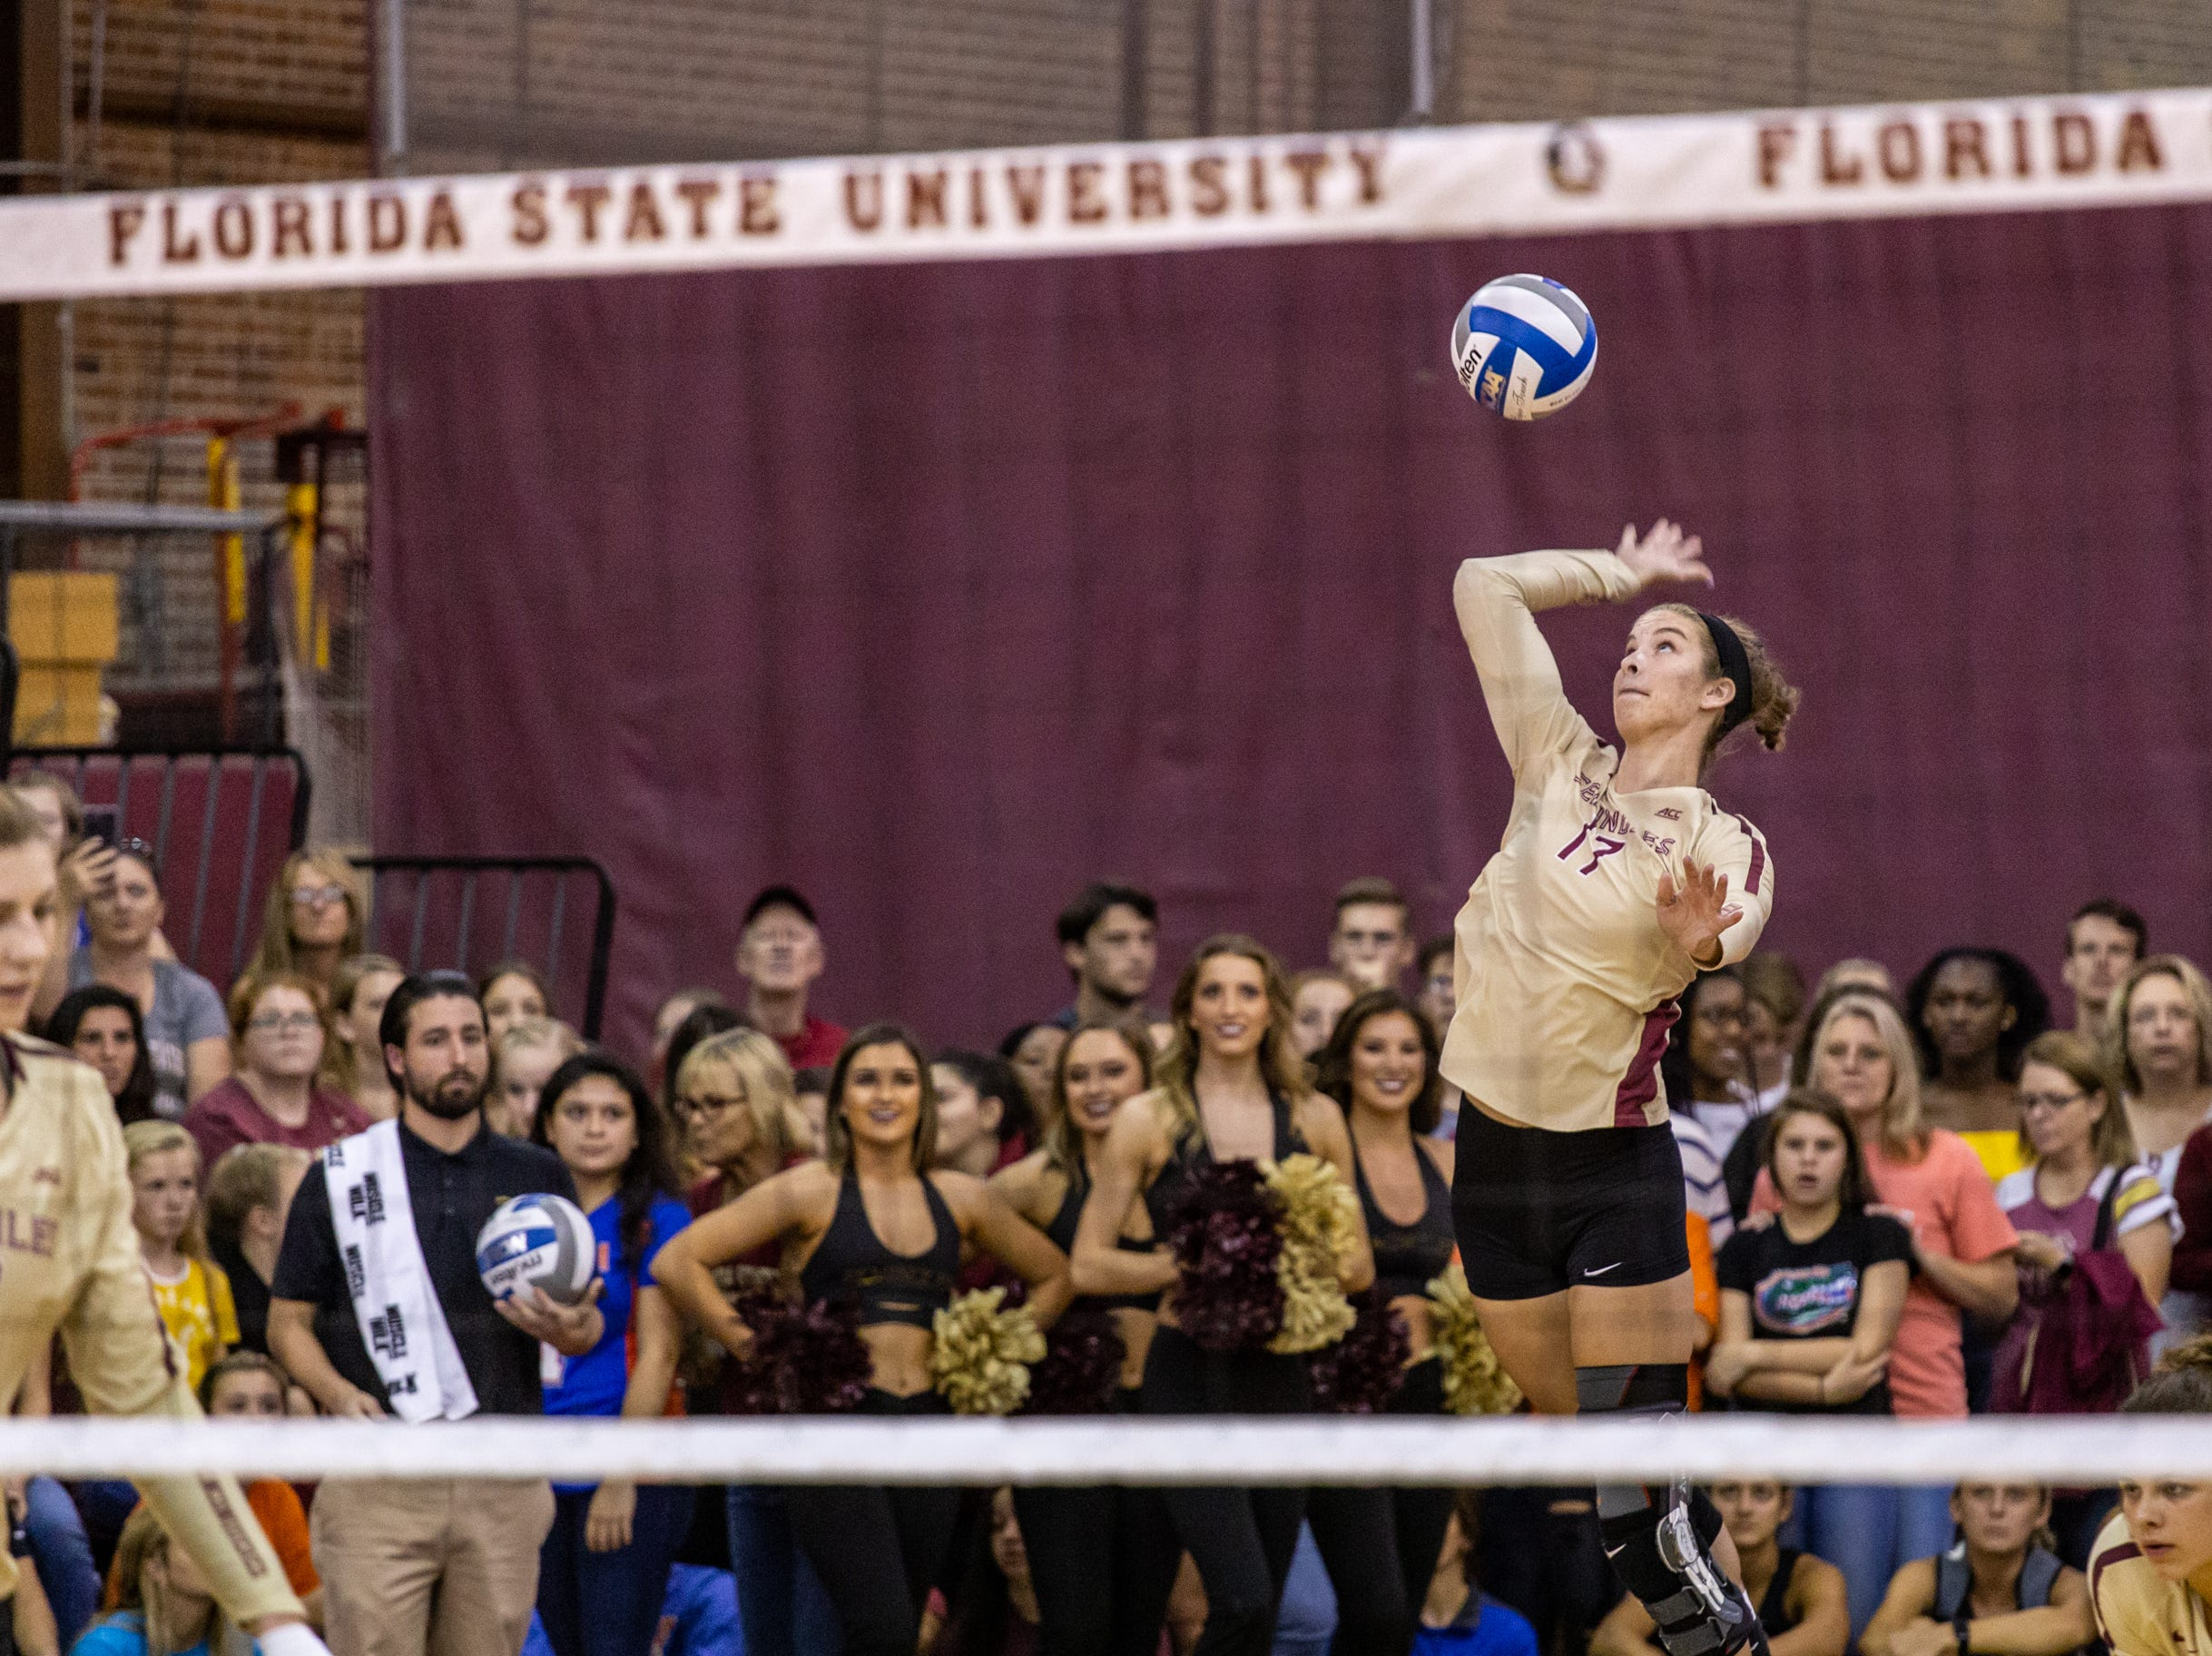 FSU setter Adrian Ell (17), serves during the first set against Florida at Tully Gymnasium on Wednesday.